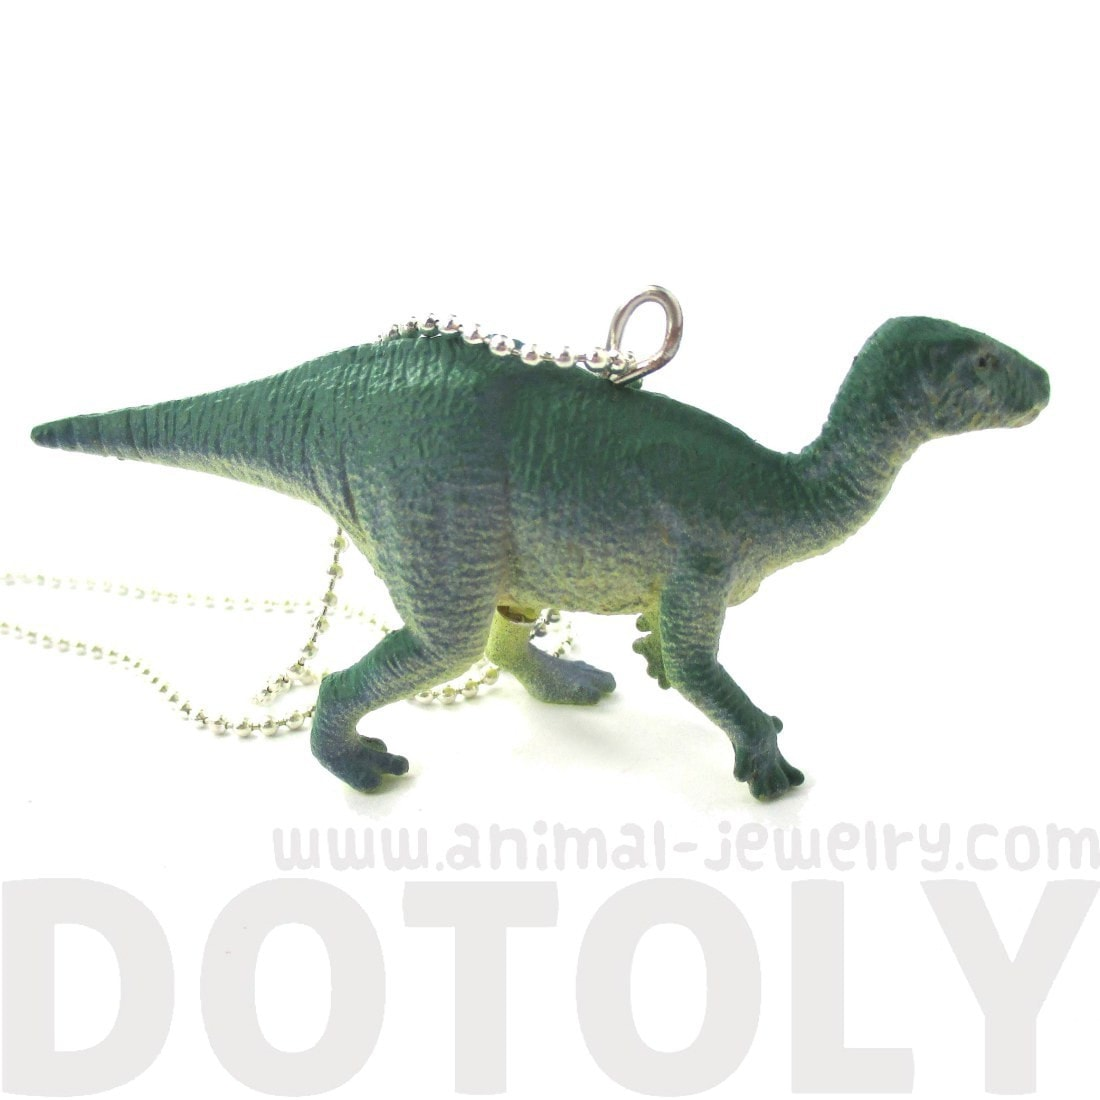 Ornithomimus Dinosaur Shaped Figurine Pendant Necklace in Green Blue